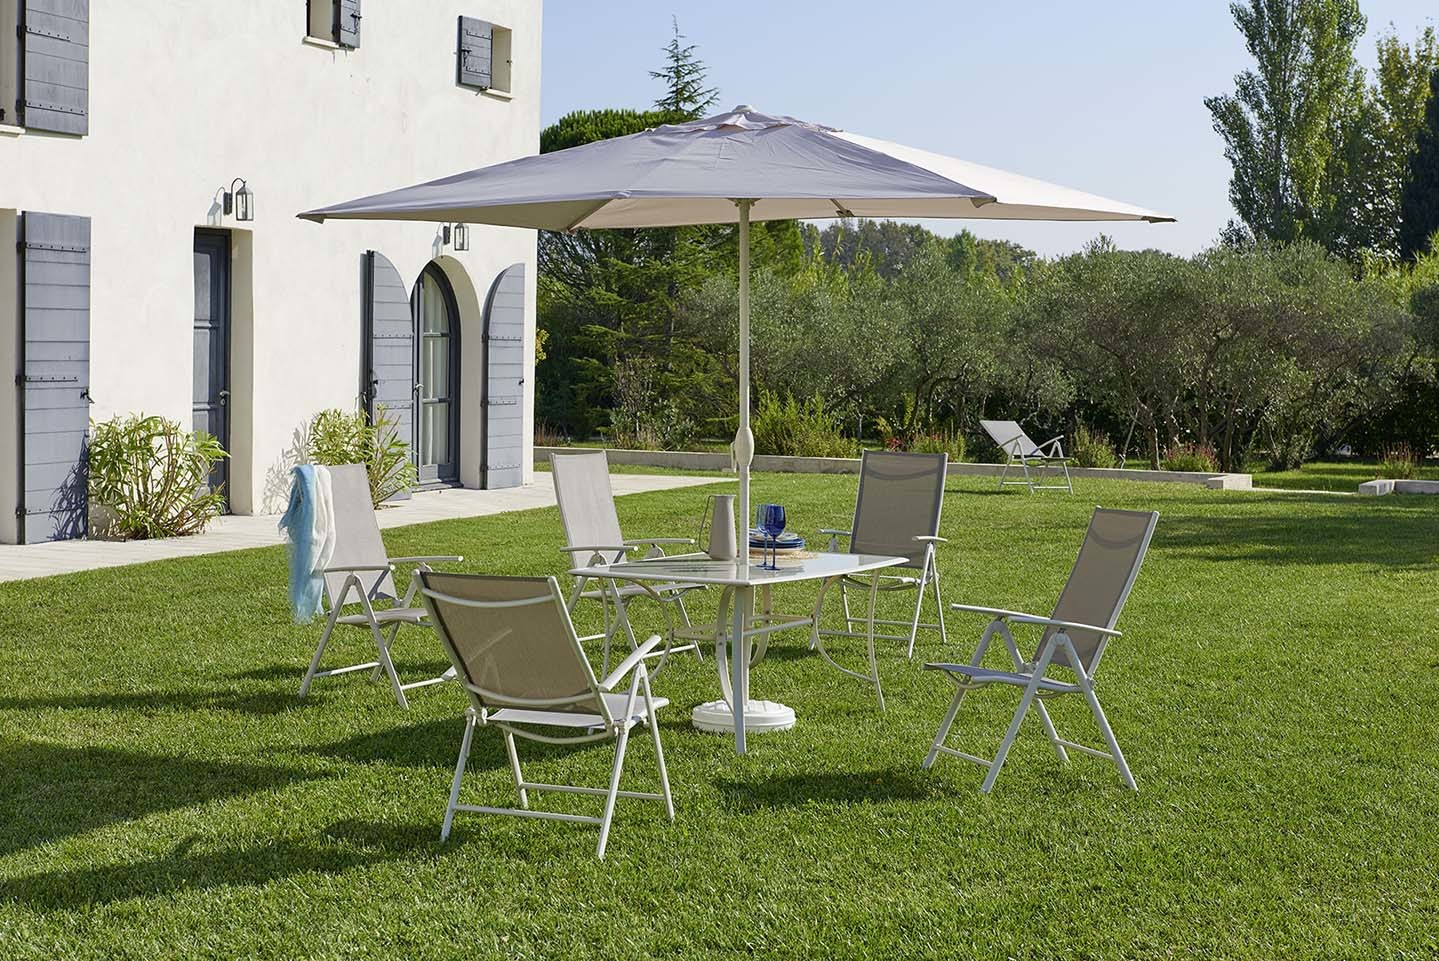 Salon De Jardin Carrefour Online Carrefour Set Rona 1 Table 43 6 Fauteuils 43 1 Parasol